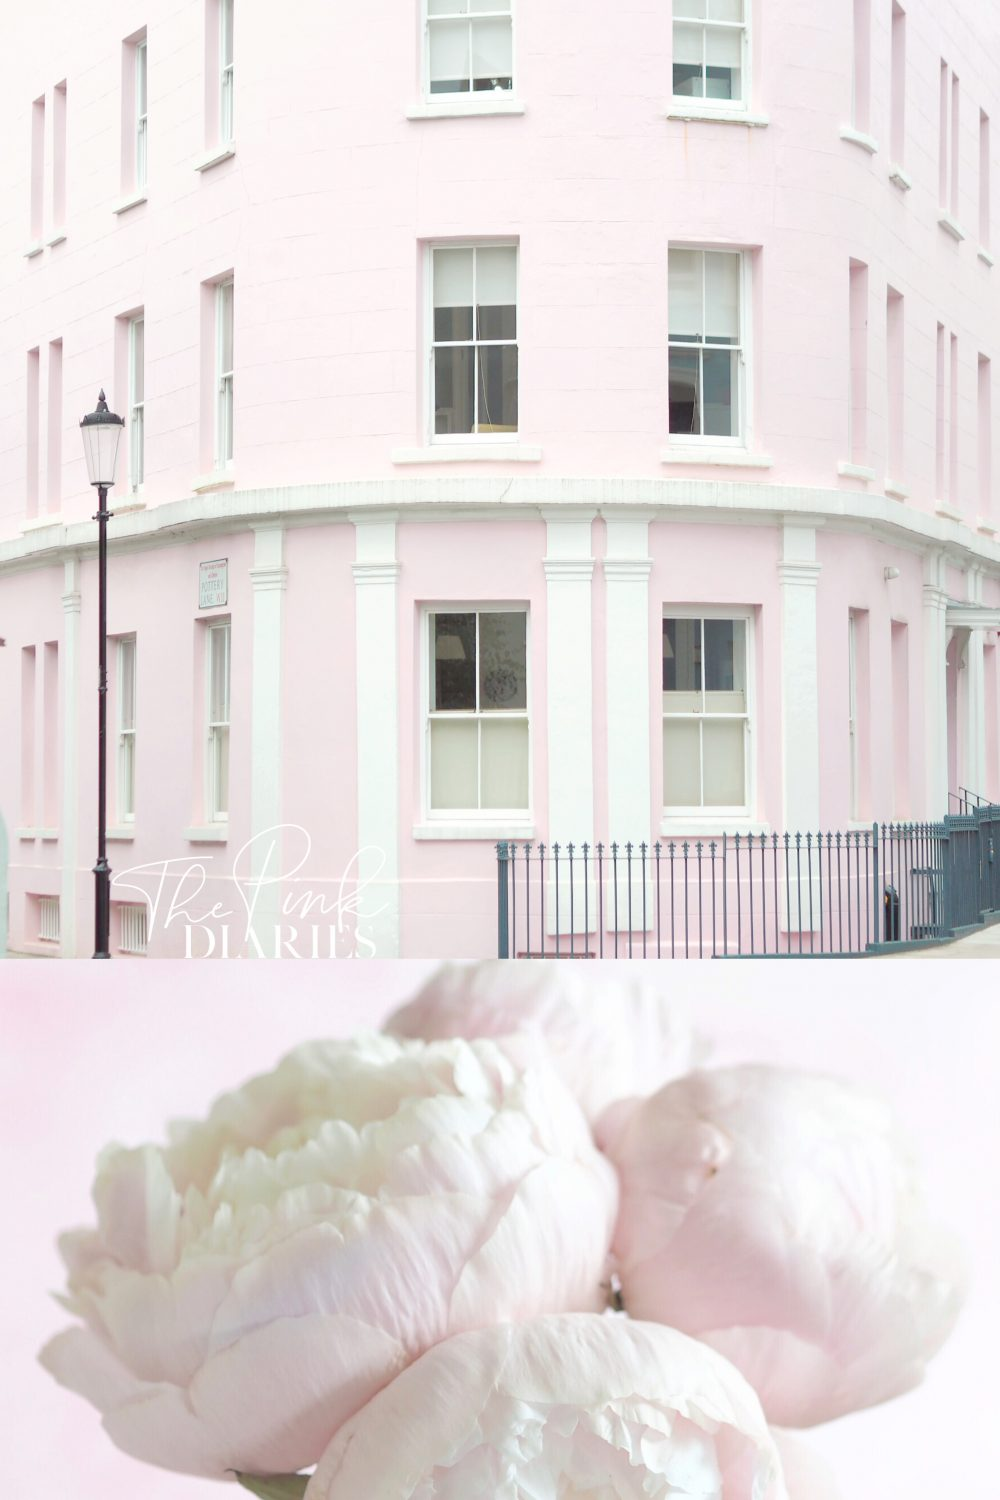 The Pink Diaries: All That's Been Lovely Lately